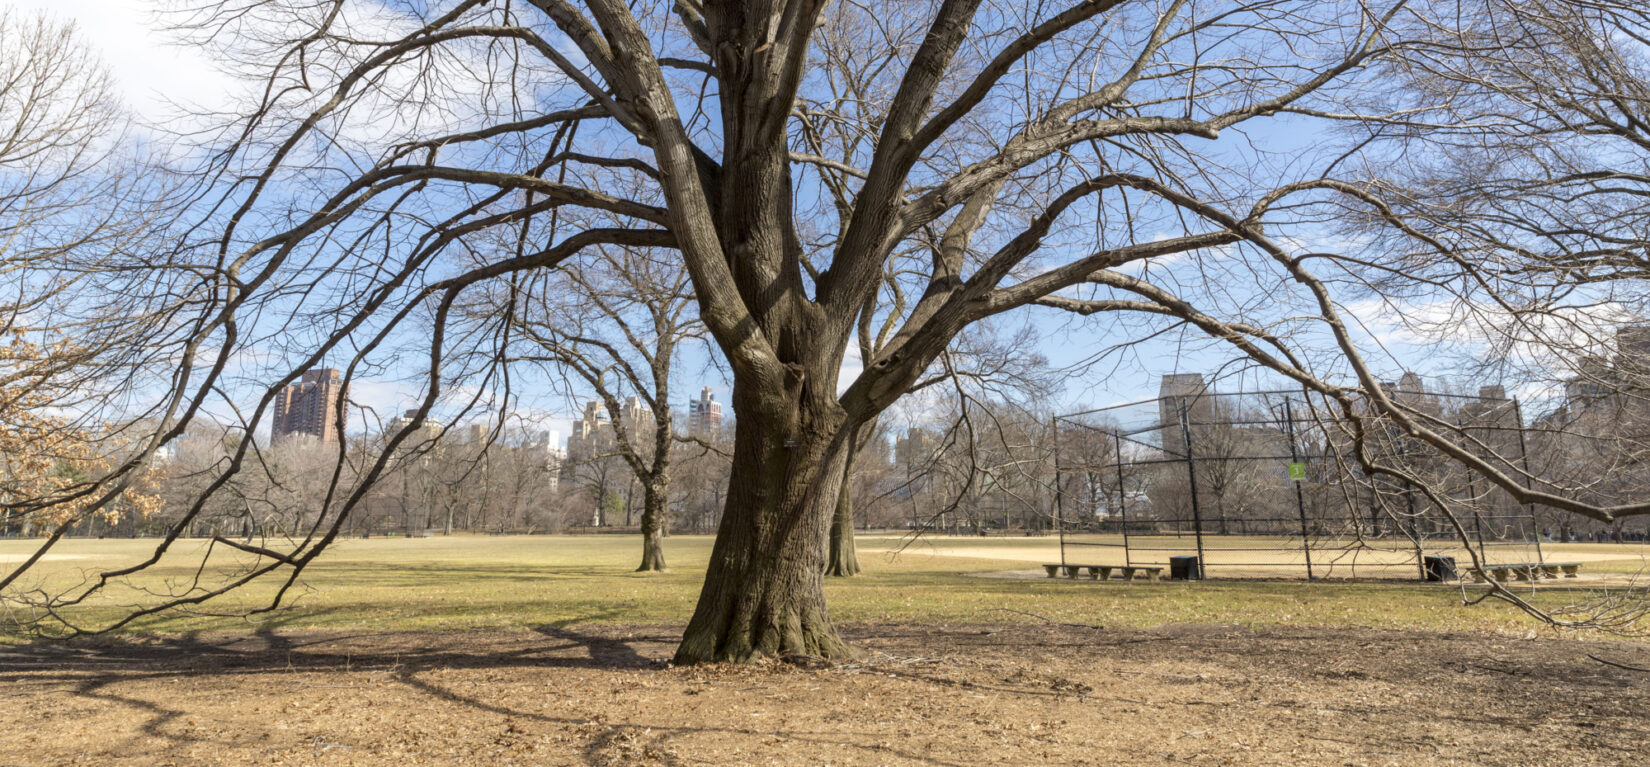 The Great Lawn seen through the barren branches of a tree in winter